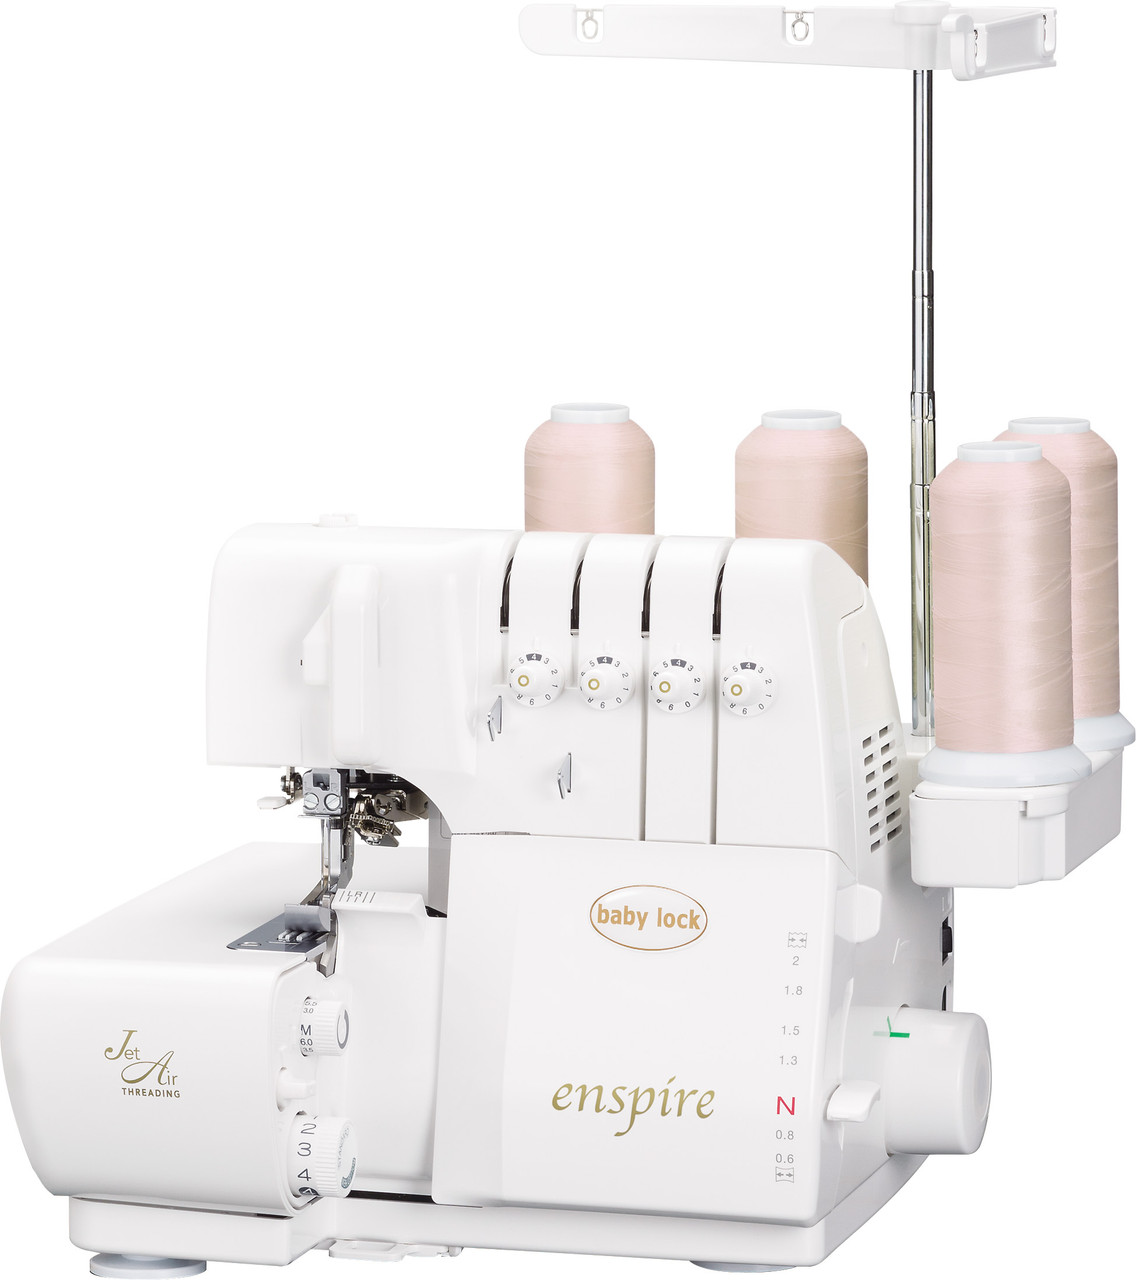 Enspire Overlocker with Bonus